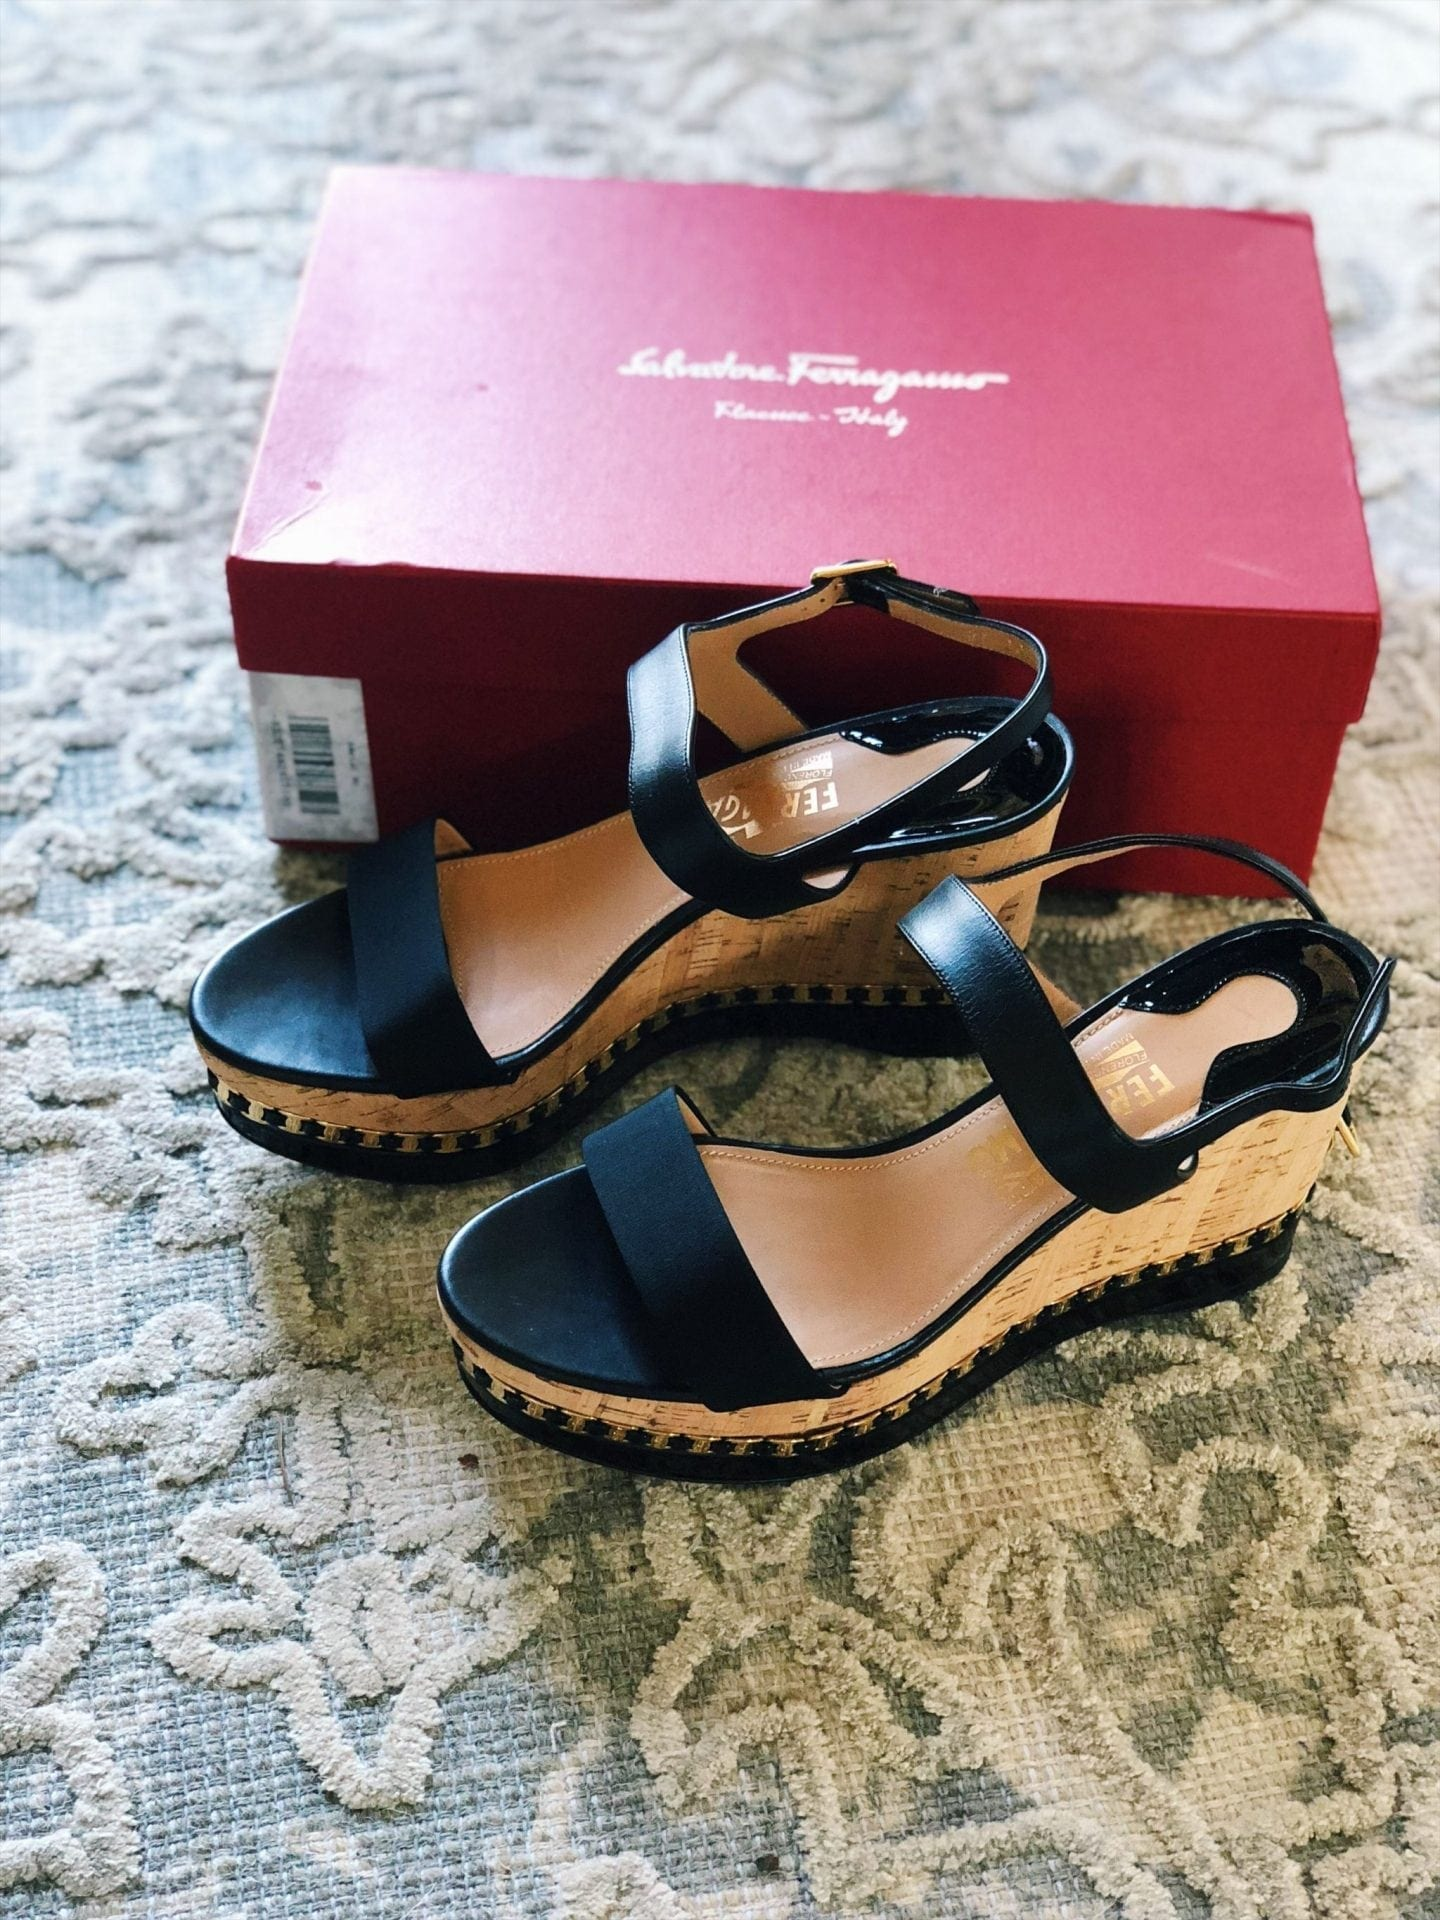 7bdd54357e0 Most of the platform cork wedge sandals out in stores right now have the  ankle strap design. Salvatore Ferragamo Mollie ...